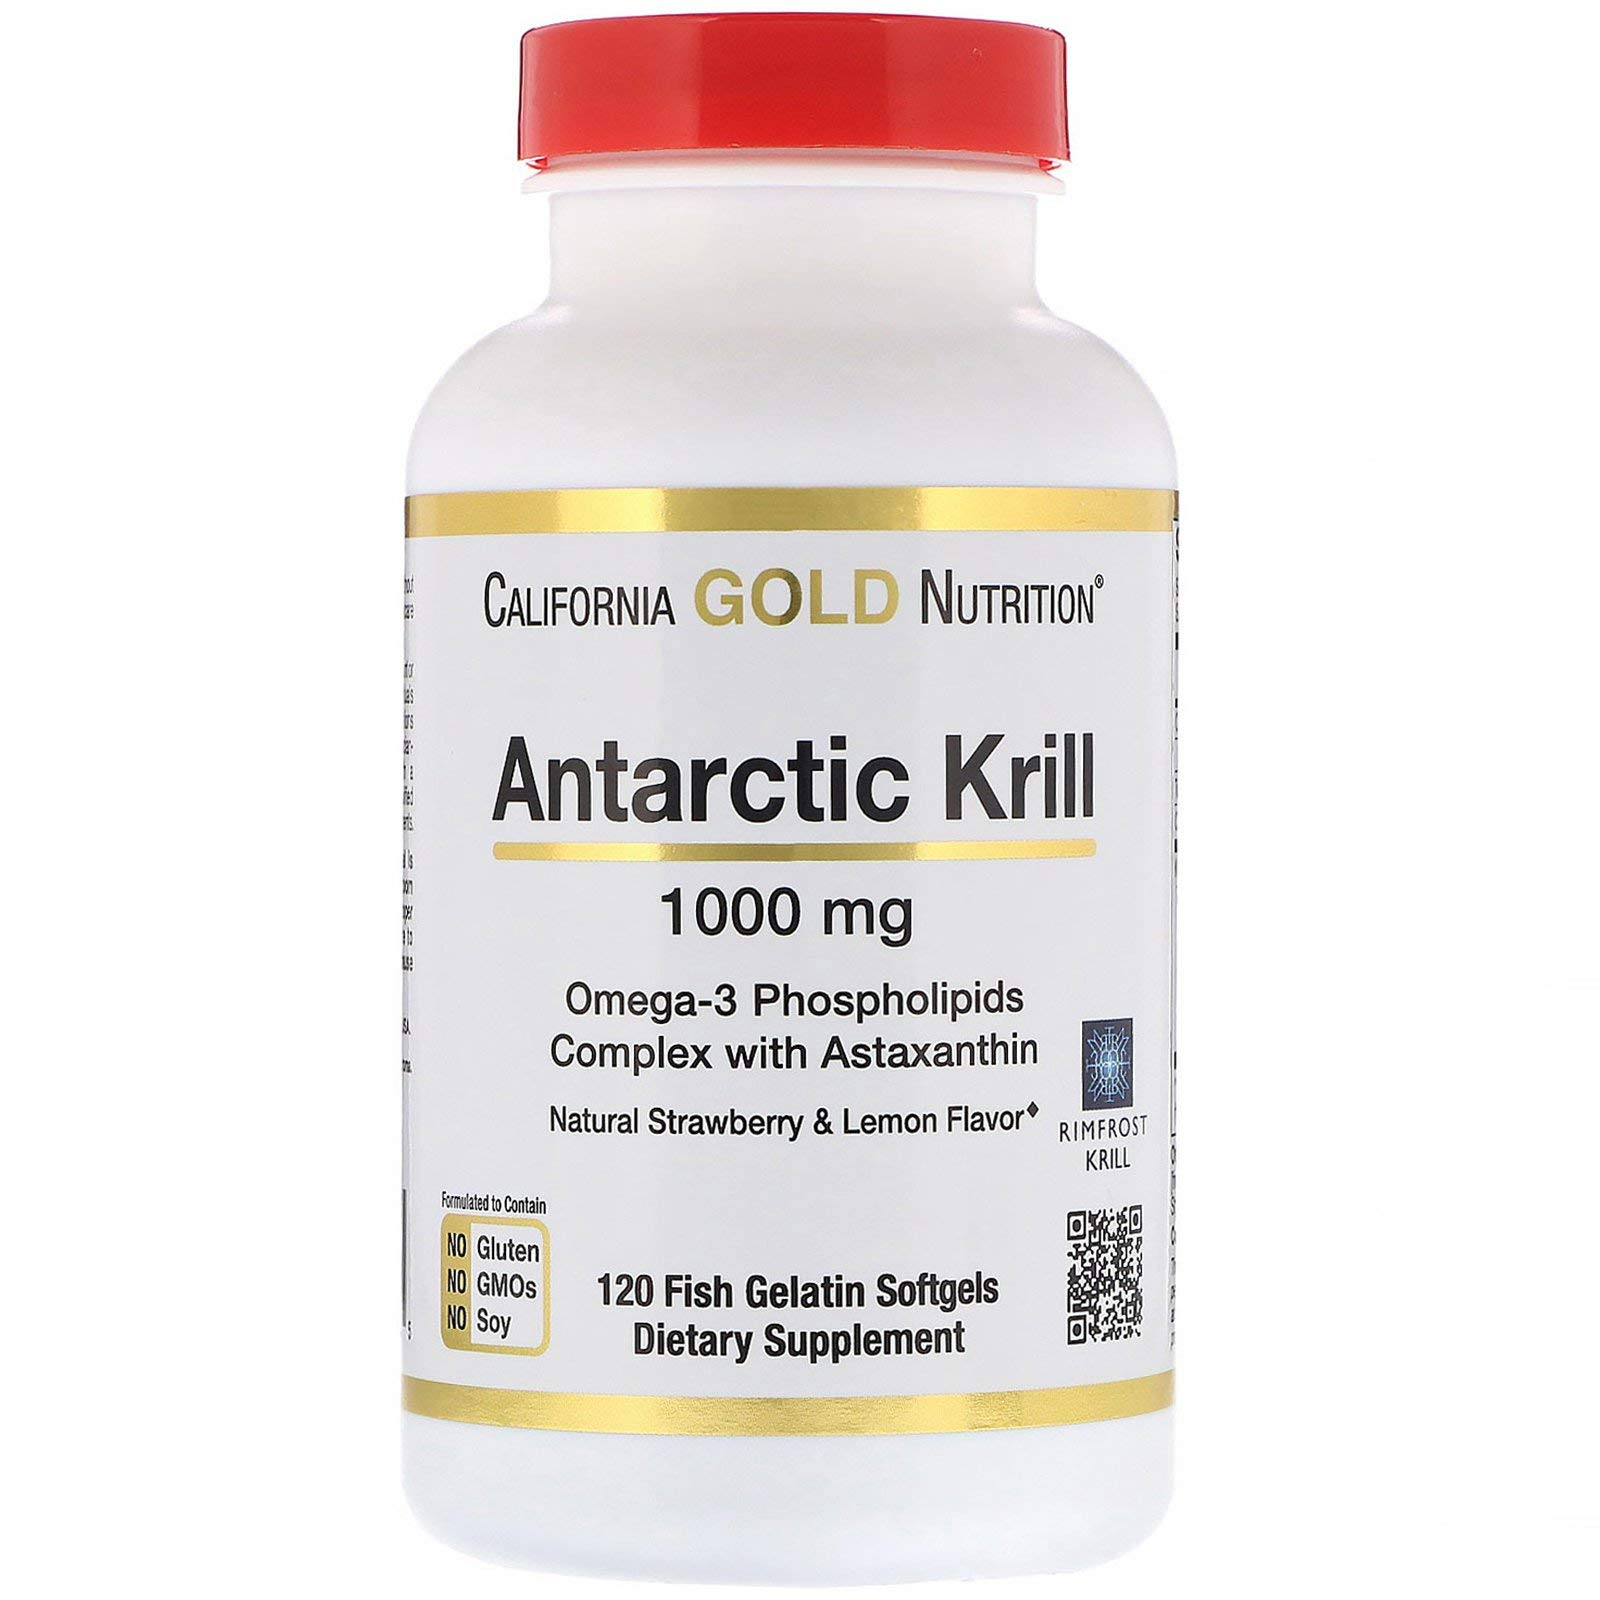 California Gold Nutrition Antarctic Krill Oil with Astaxanthin RIMFROST Natural Strawberry Lemon Flavor 1000 mg 120 Fish Gelatin Softgels, Milk-Free, Egg-Free, Gluten-Free, Peanut Free, Soy-Free, CGN by California Gold Nutrition